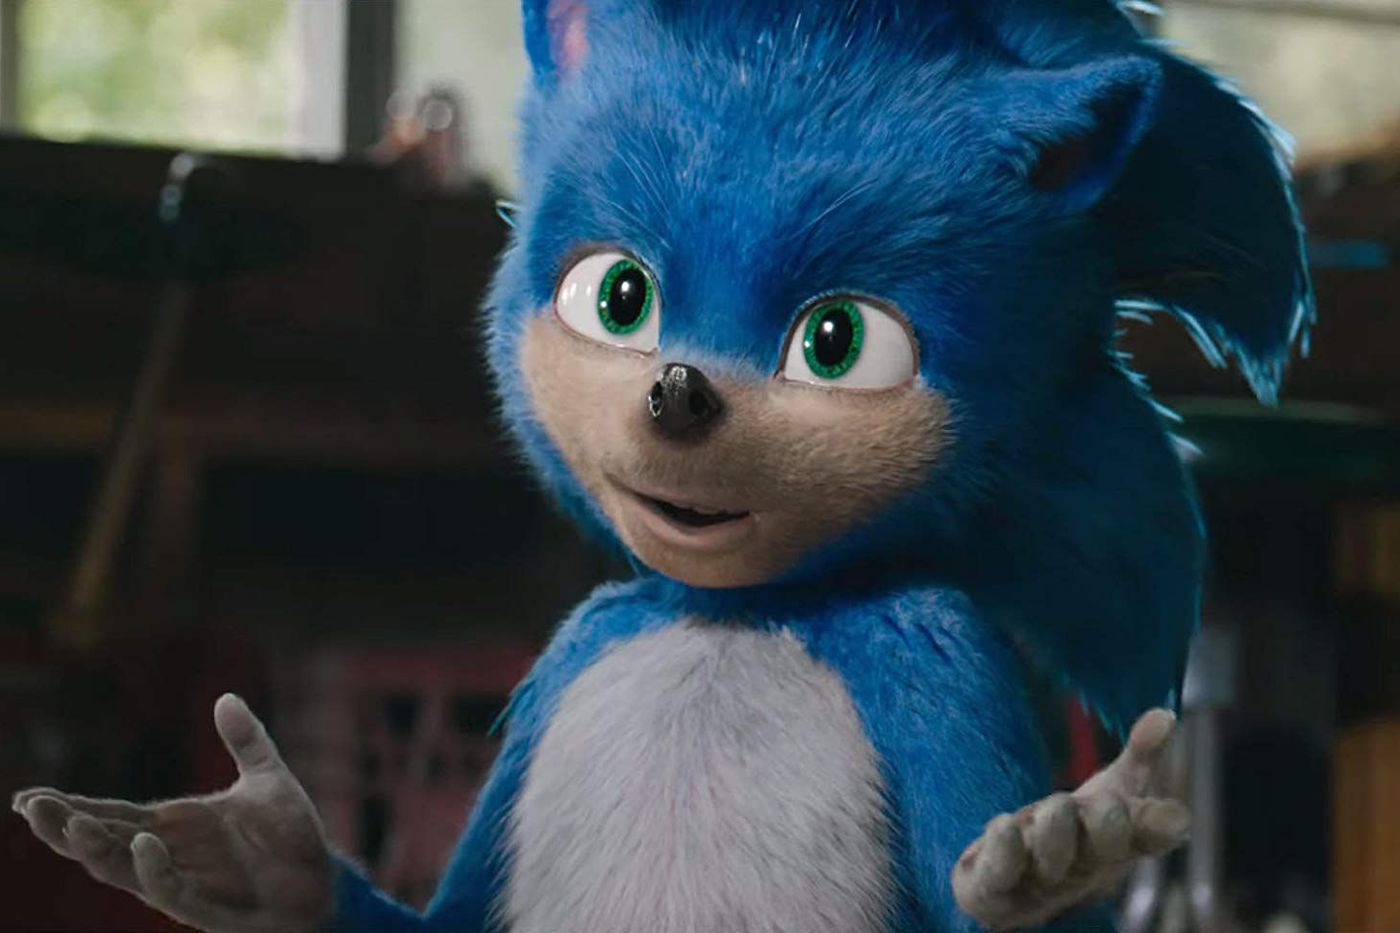 Sonic S Live Action Design Upset The Entire Internet So The Studio Is Changing It The Verge